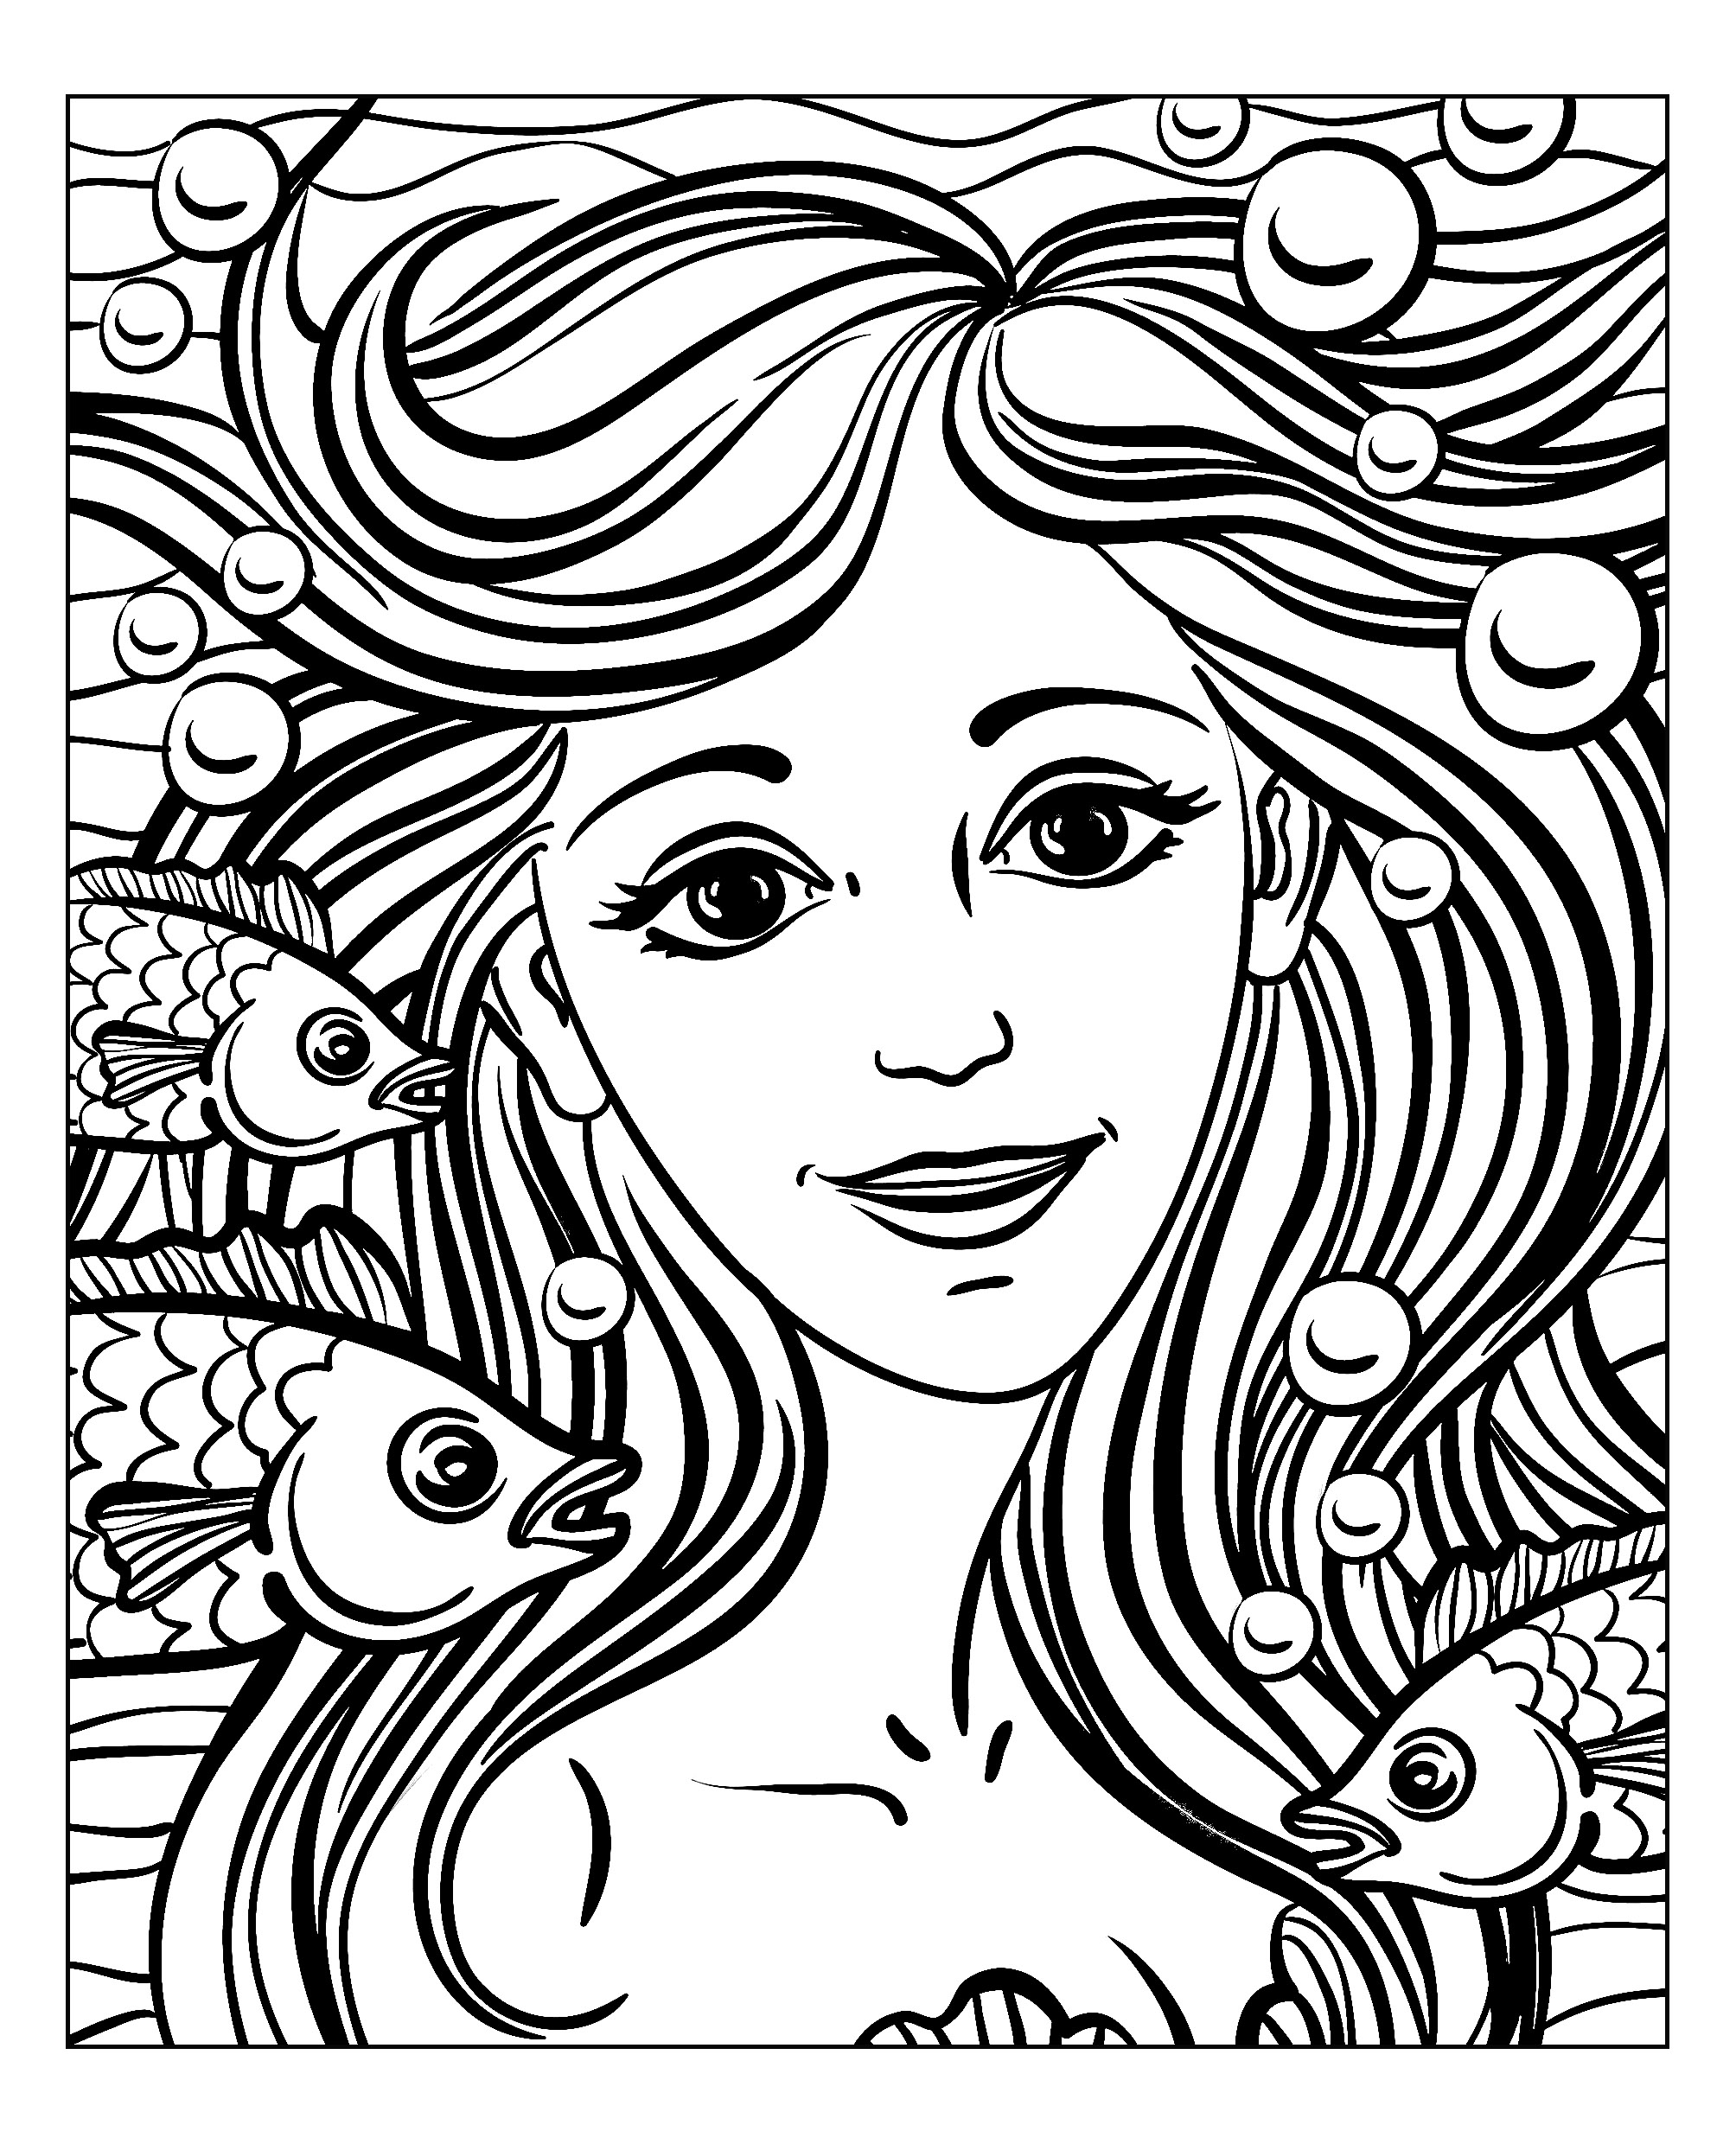 coloring pages for adults women best 898 beautiful women coloring pages for adults ideas coloring for pages adults women